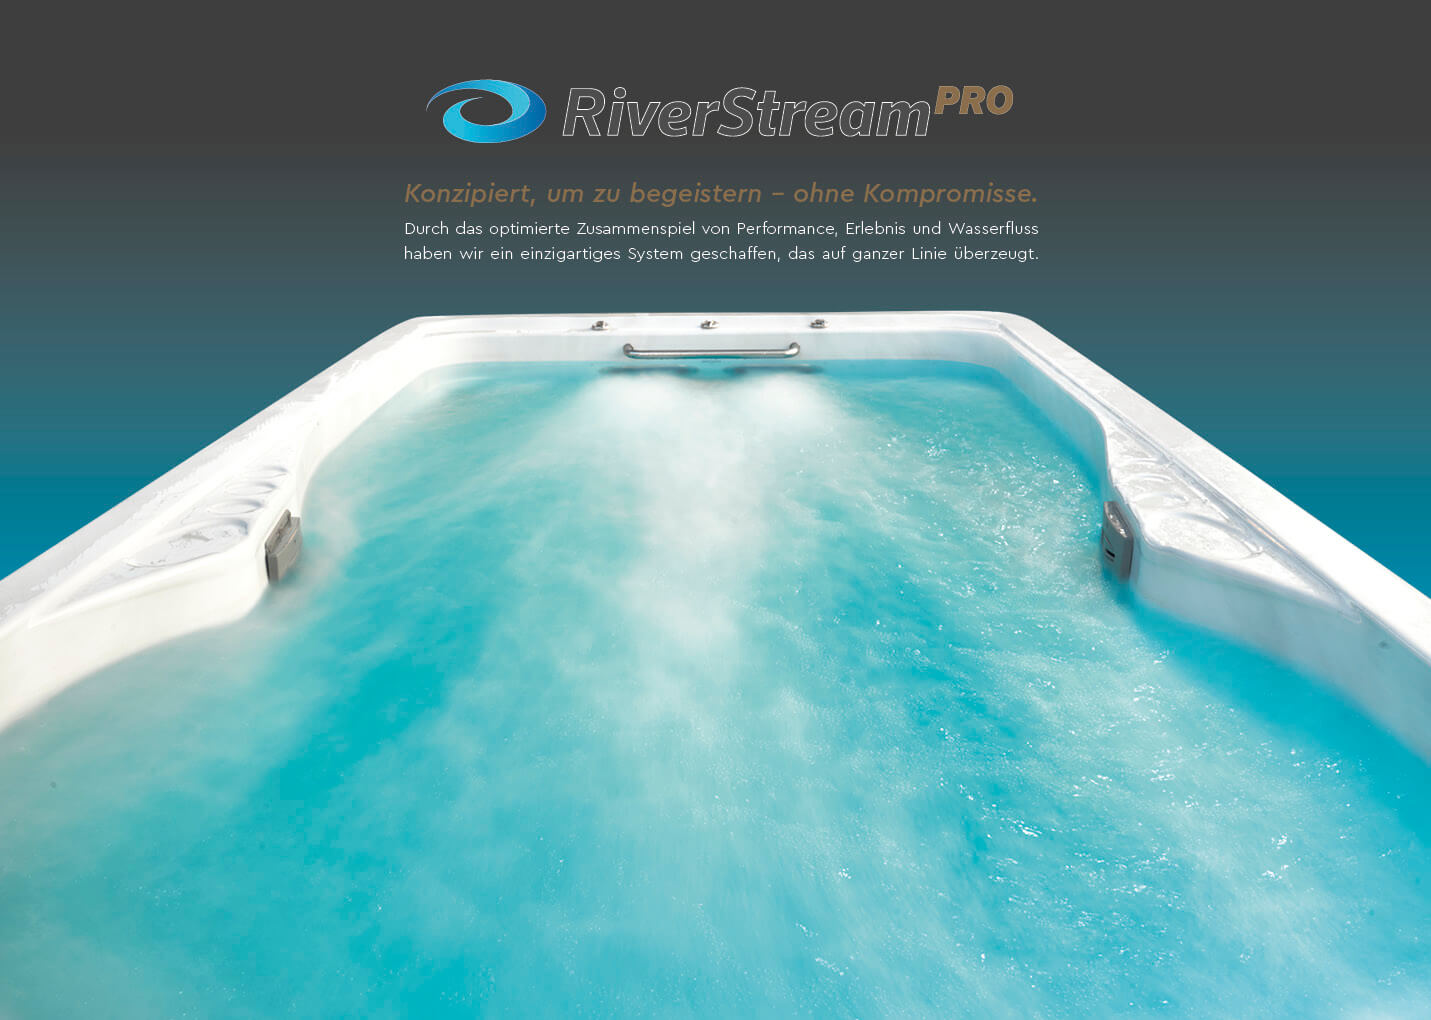 whirlpool-center-swim-spas-vivo-spa-water-fit-riverstream-pro-intro-mood